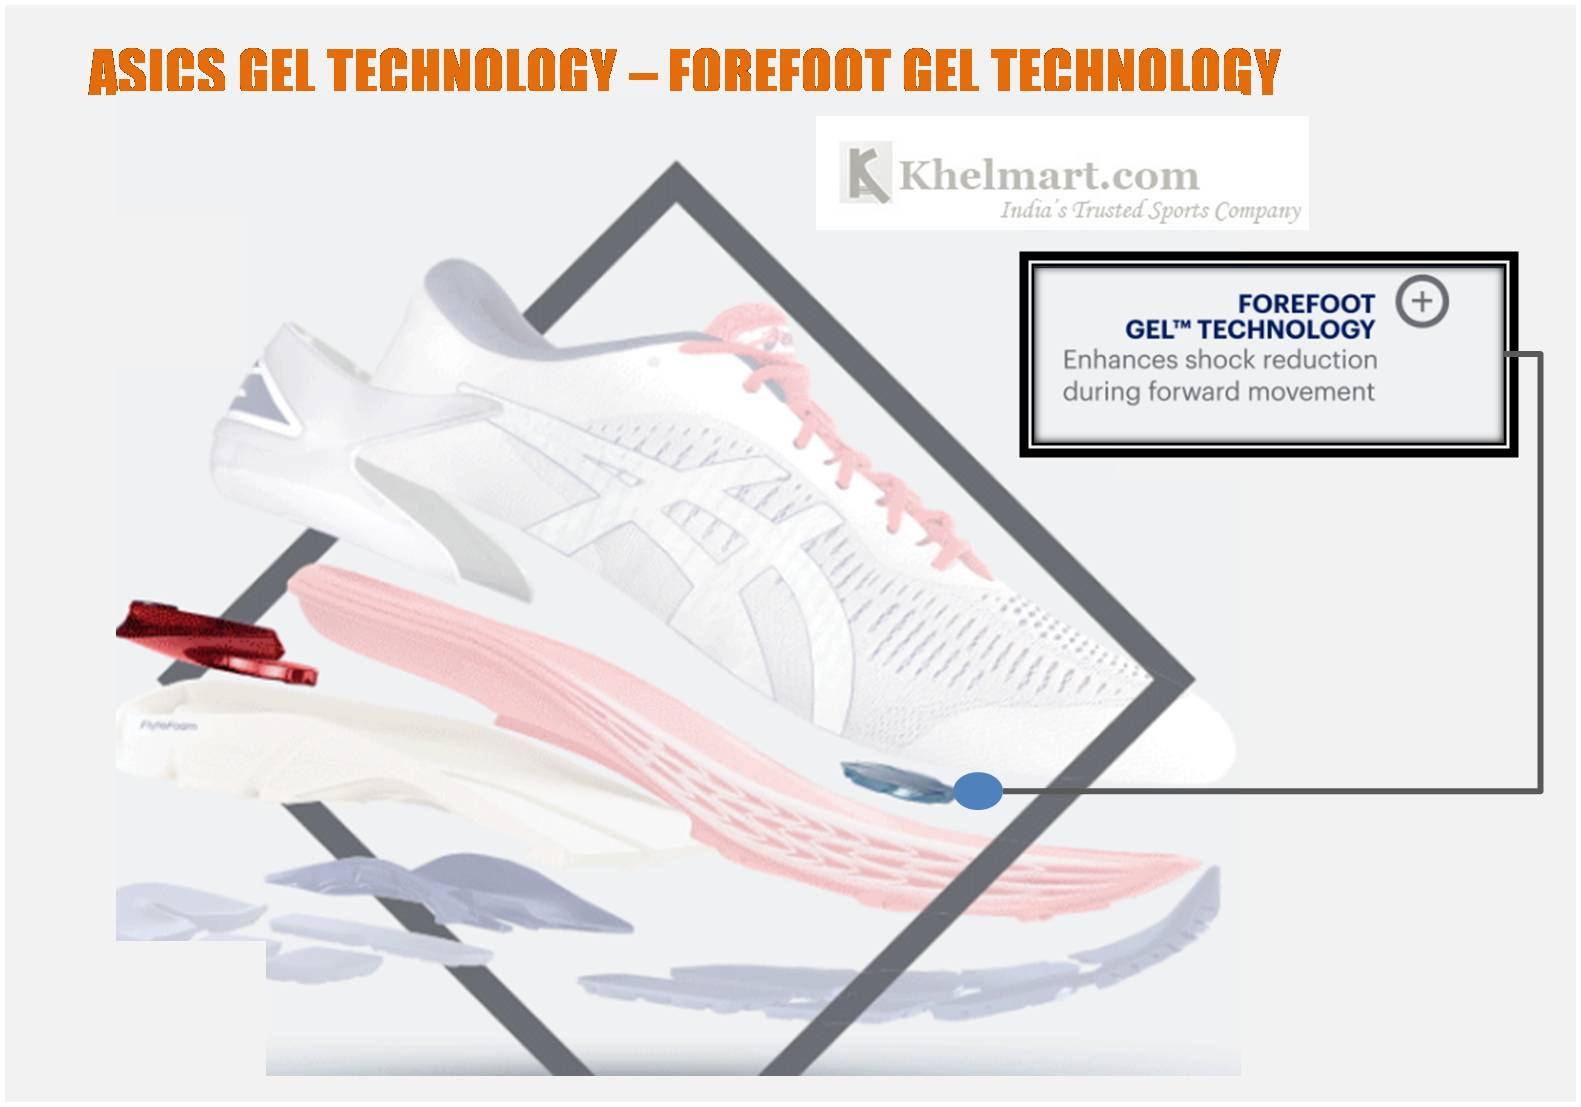 ASICS_GEL_TECHNOLOGY_REAR_FOOT_GEL_TECHNOLOGY_khelmart2